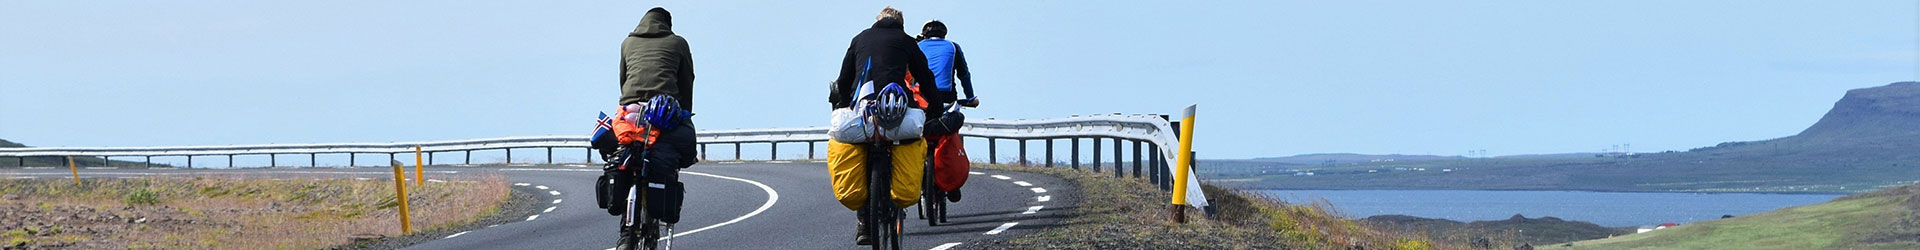 tour cycling, three riders with loaded bikes on highway